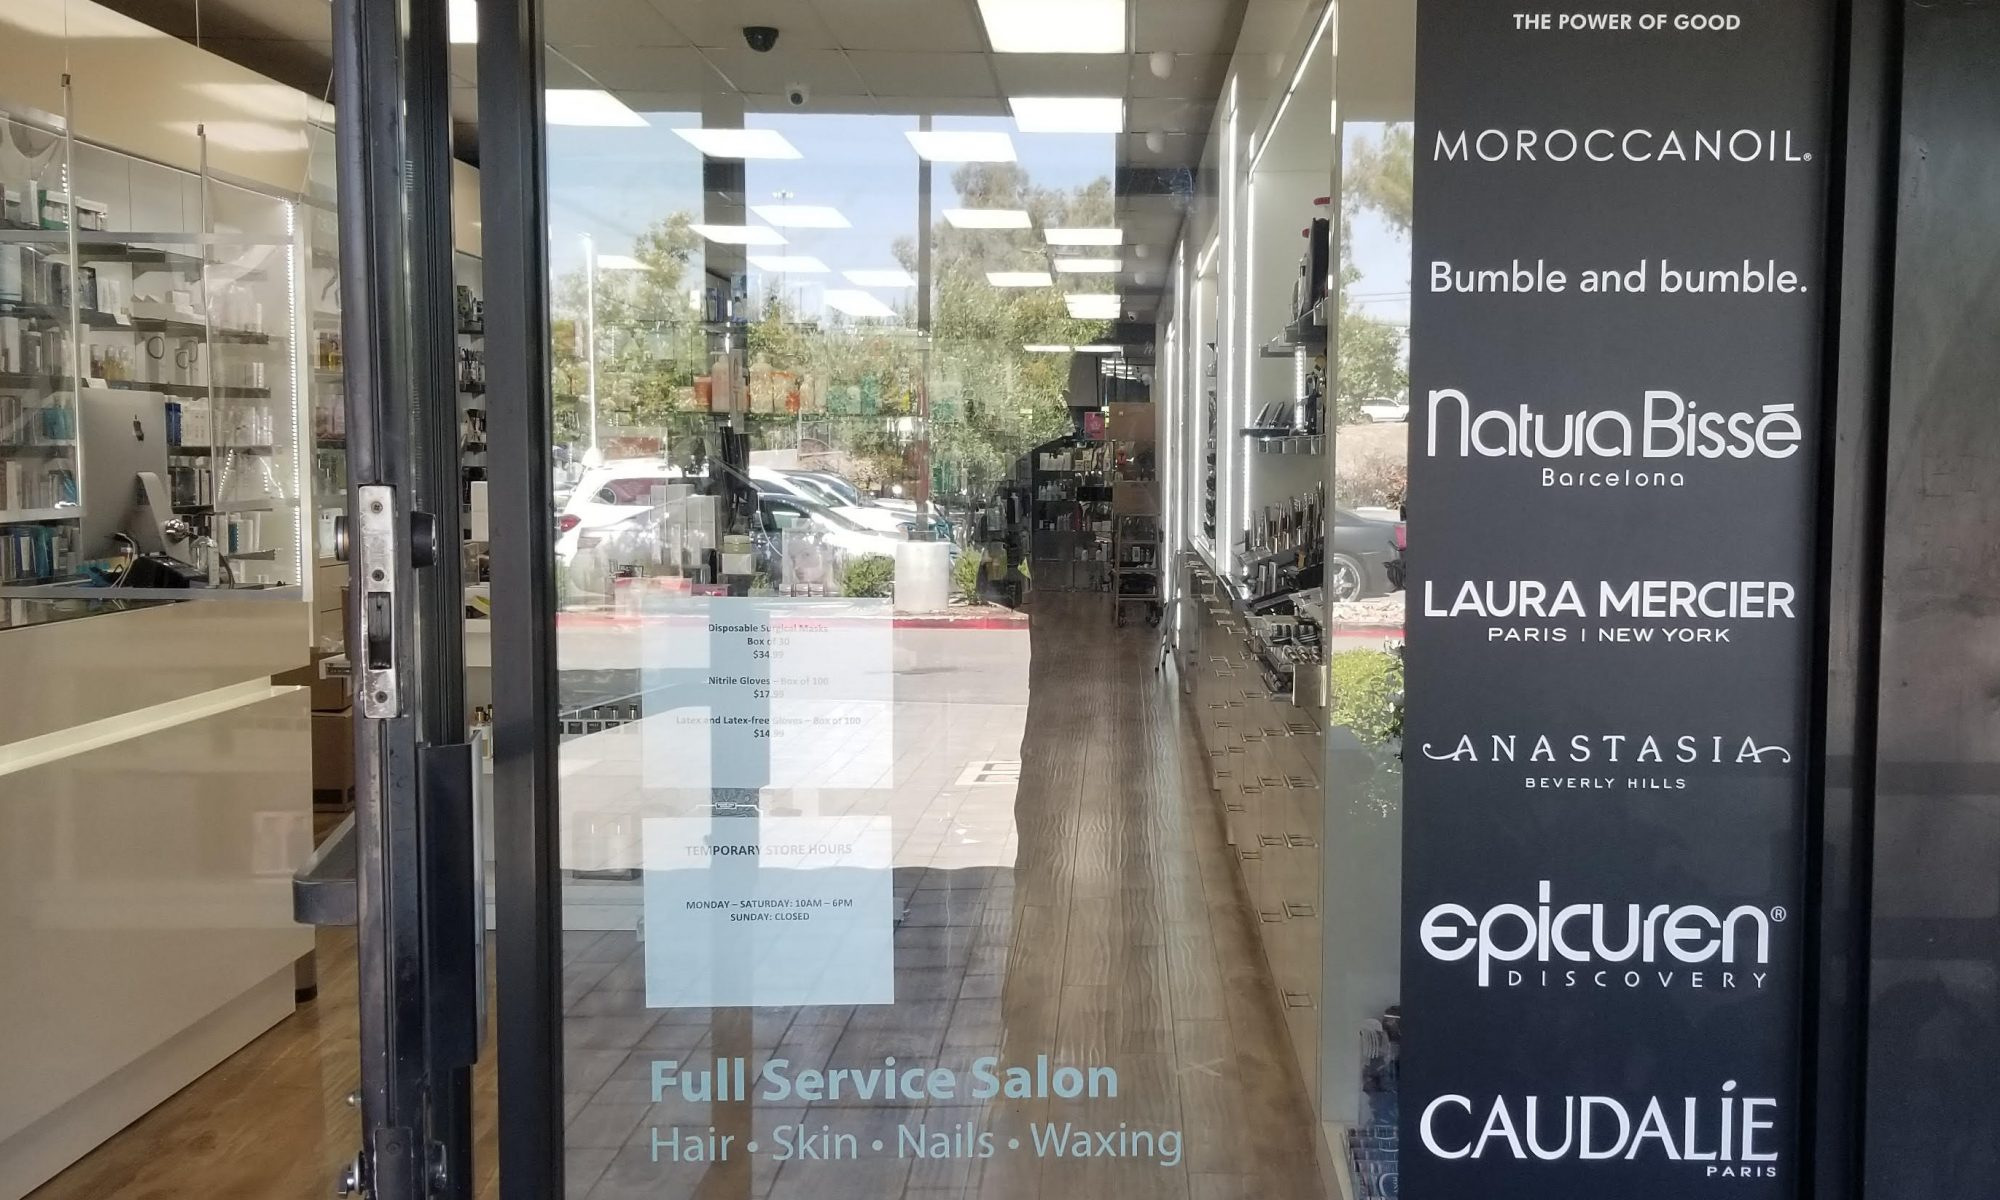 We created salon window graphics for Pro Beauty. So the Woodland Hills beauty center can advertise services while providing privacy to their clientele.